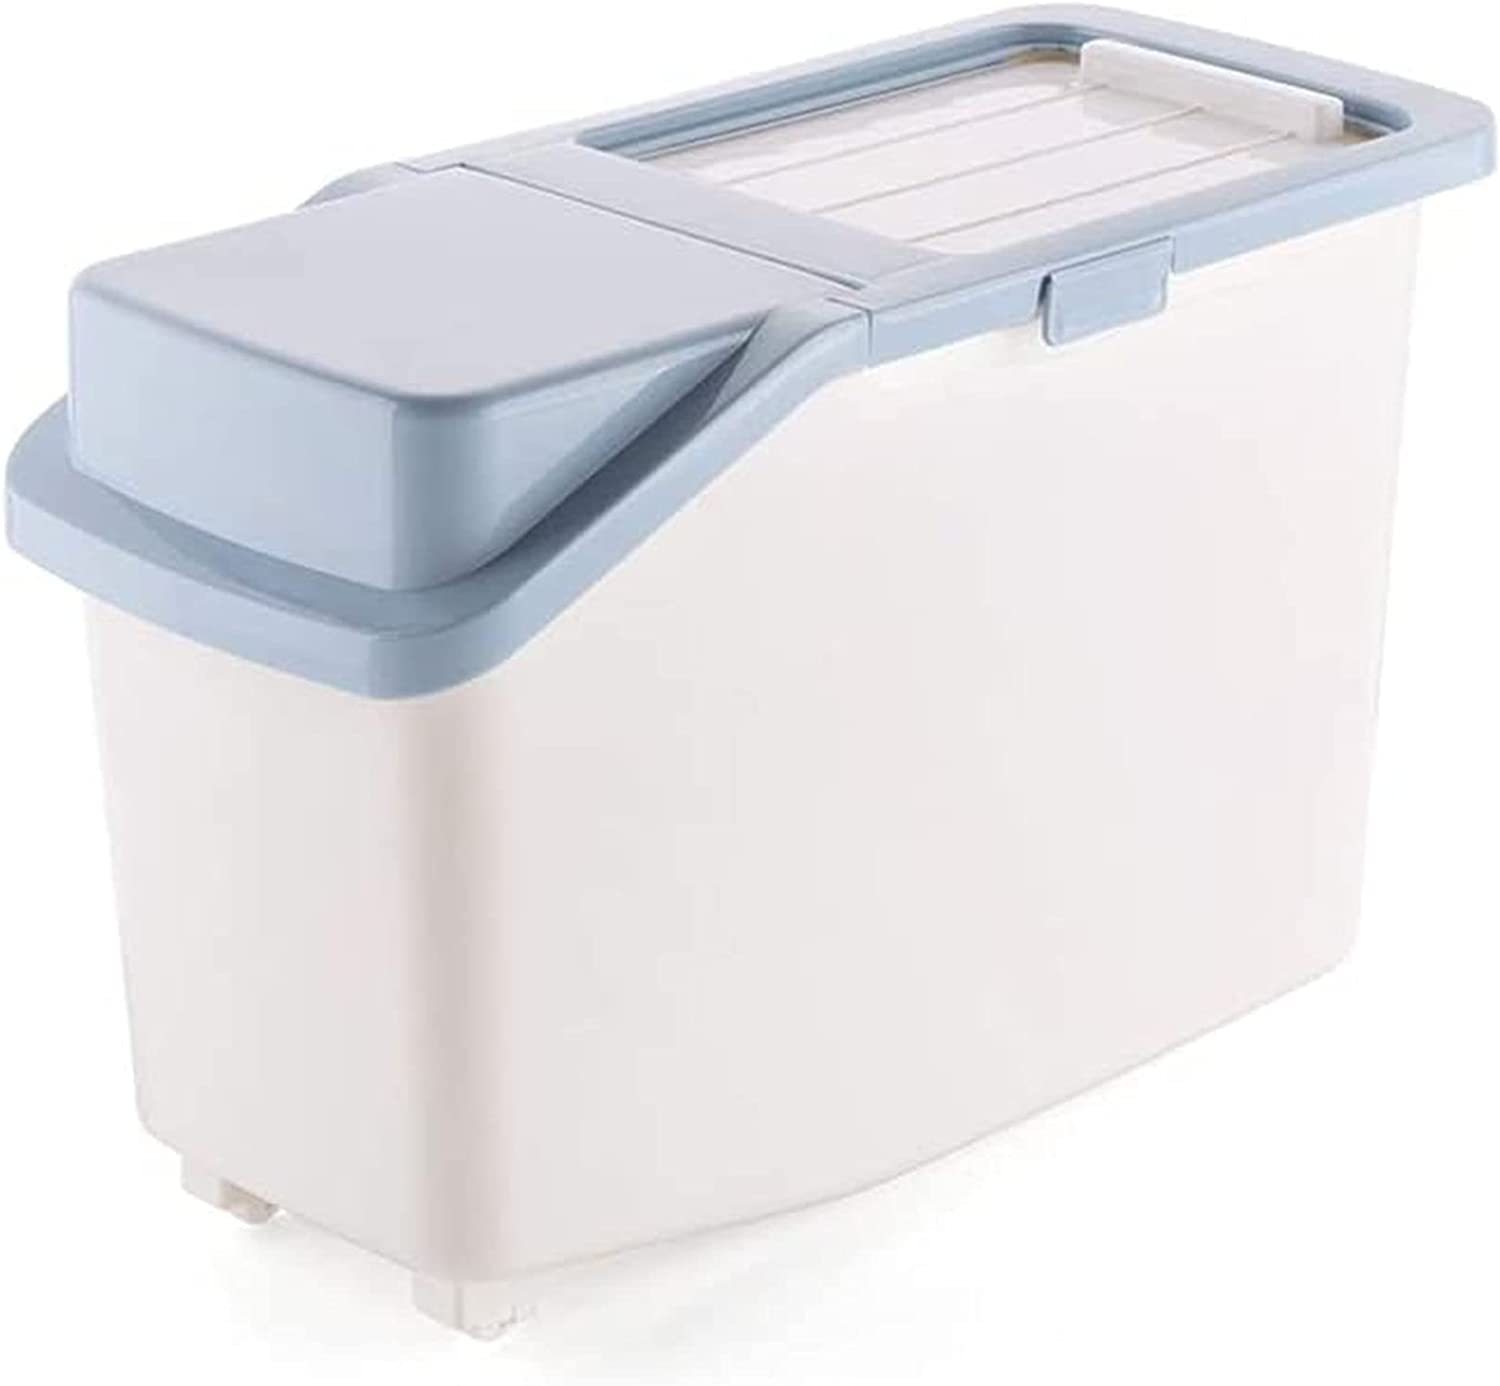 KEKEYANG Max 64% OFF Cereal Storage containers Pl Box Container Rice Challenge the lowest price of Japan ☆